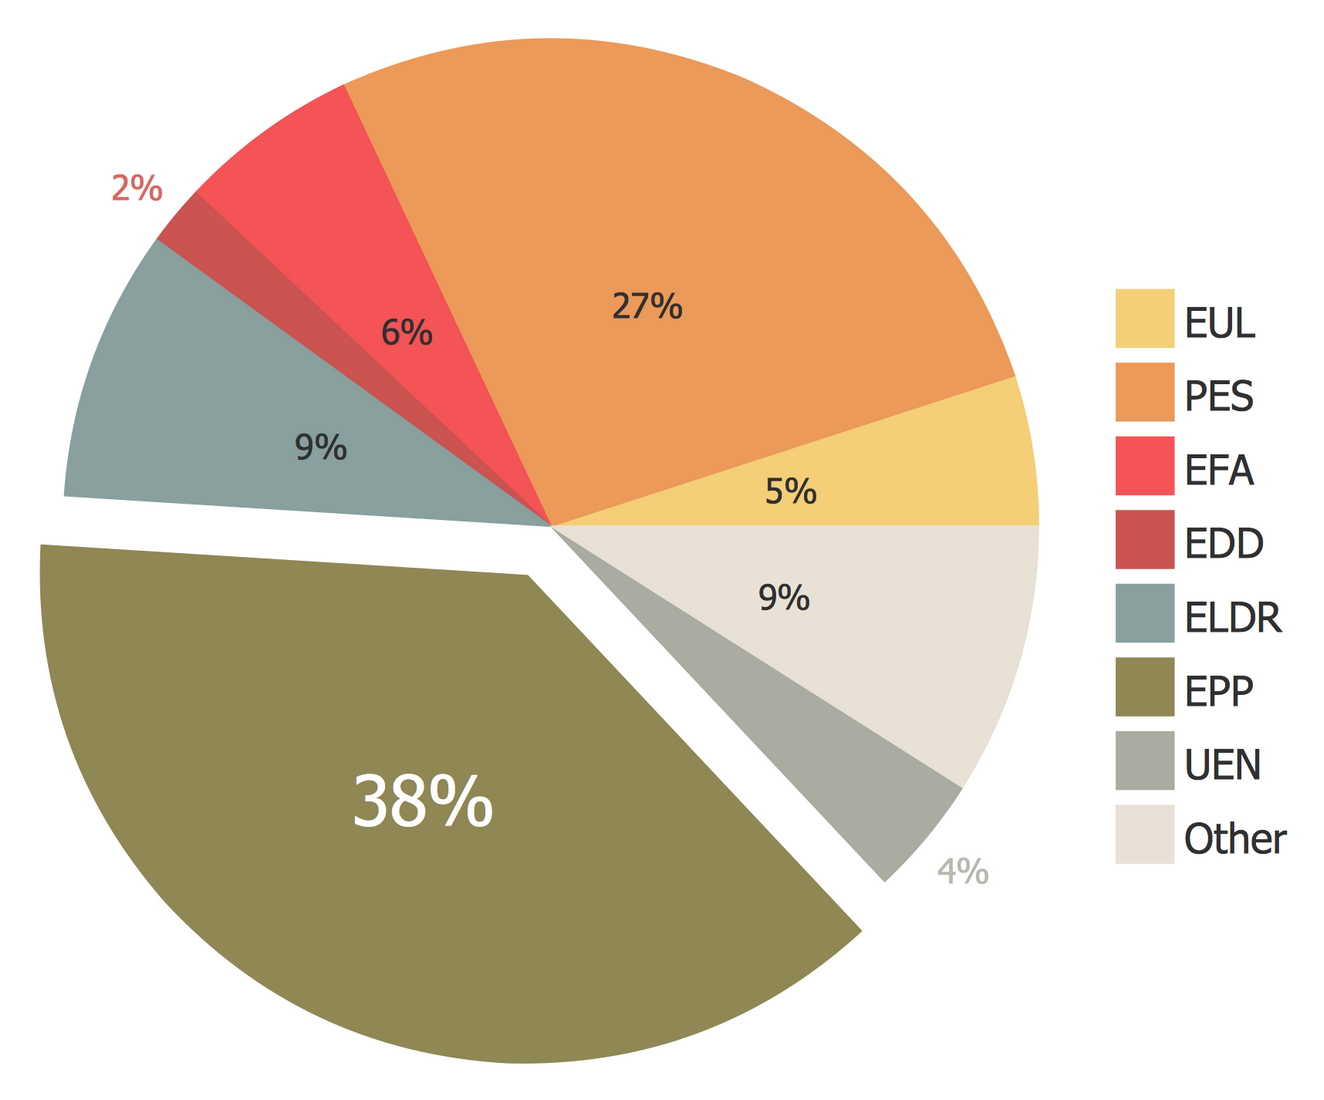 Pie charts solution conceptdraw exploded pie chart european parliament election nvjuhfo Image collections